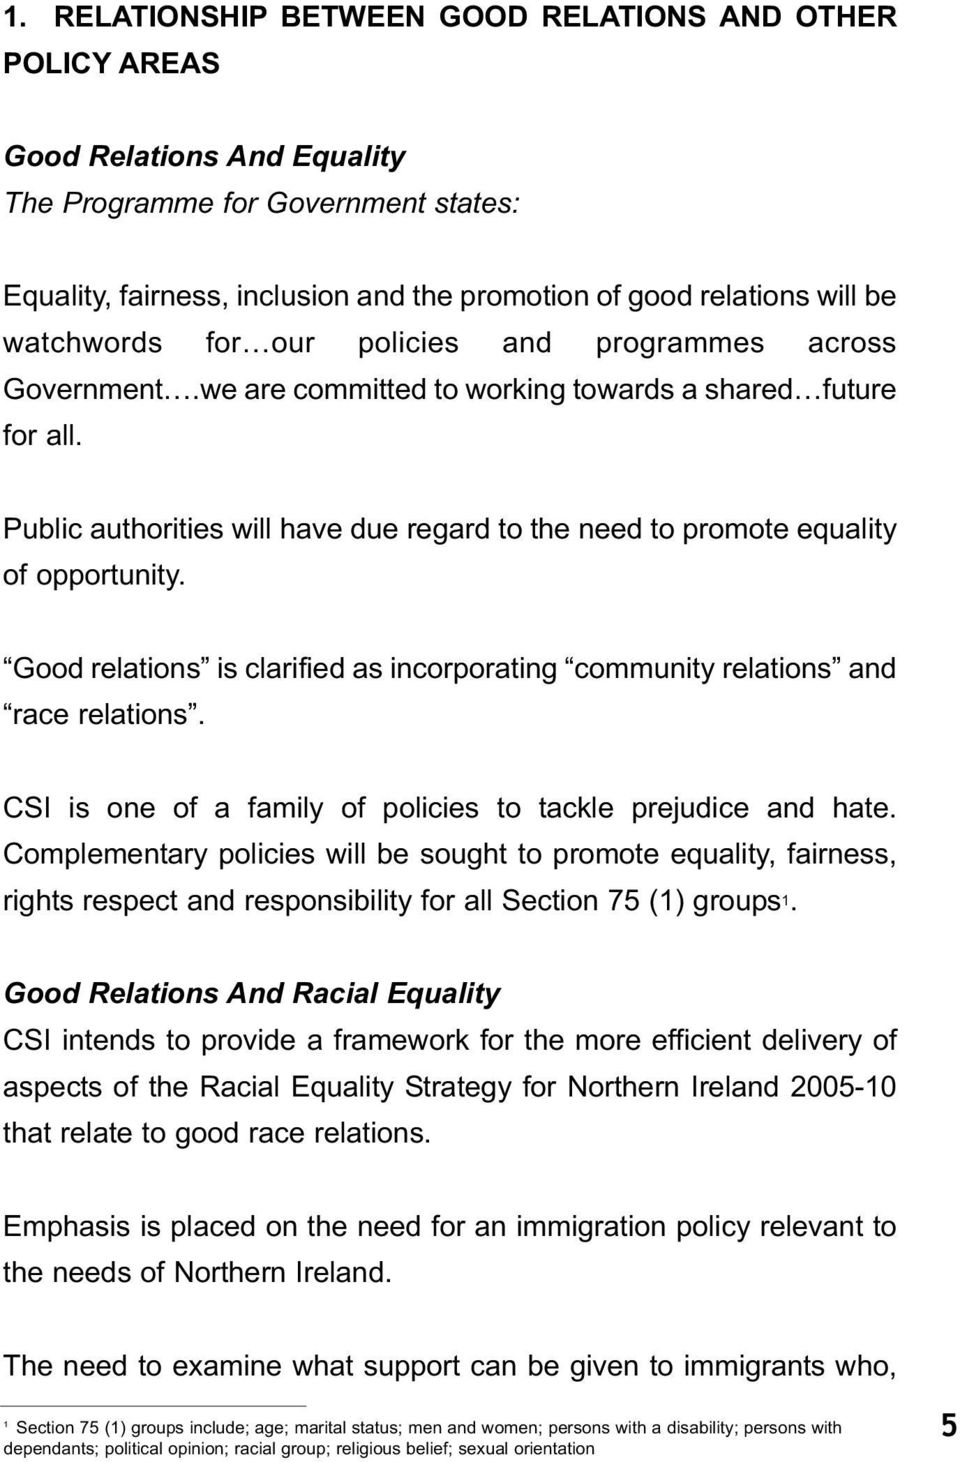 Public authorities will have due regard to the need to promote equality of opportunity. Good relations is clarified as incorporating community relations and race relations.